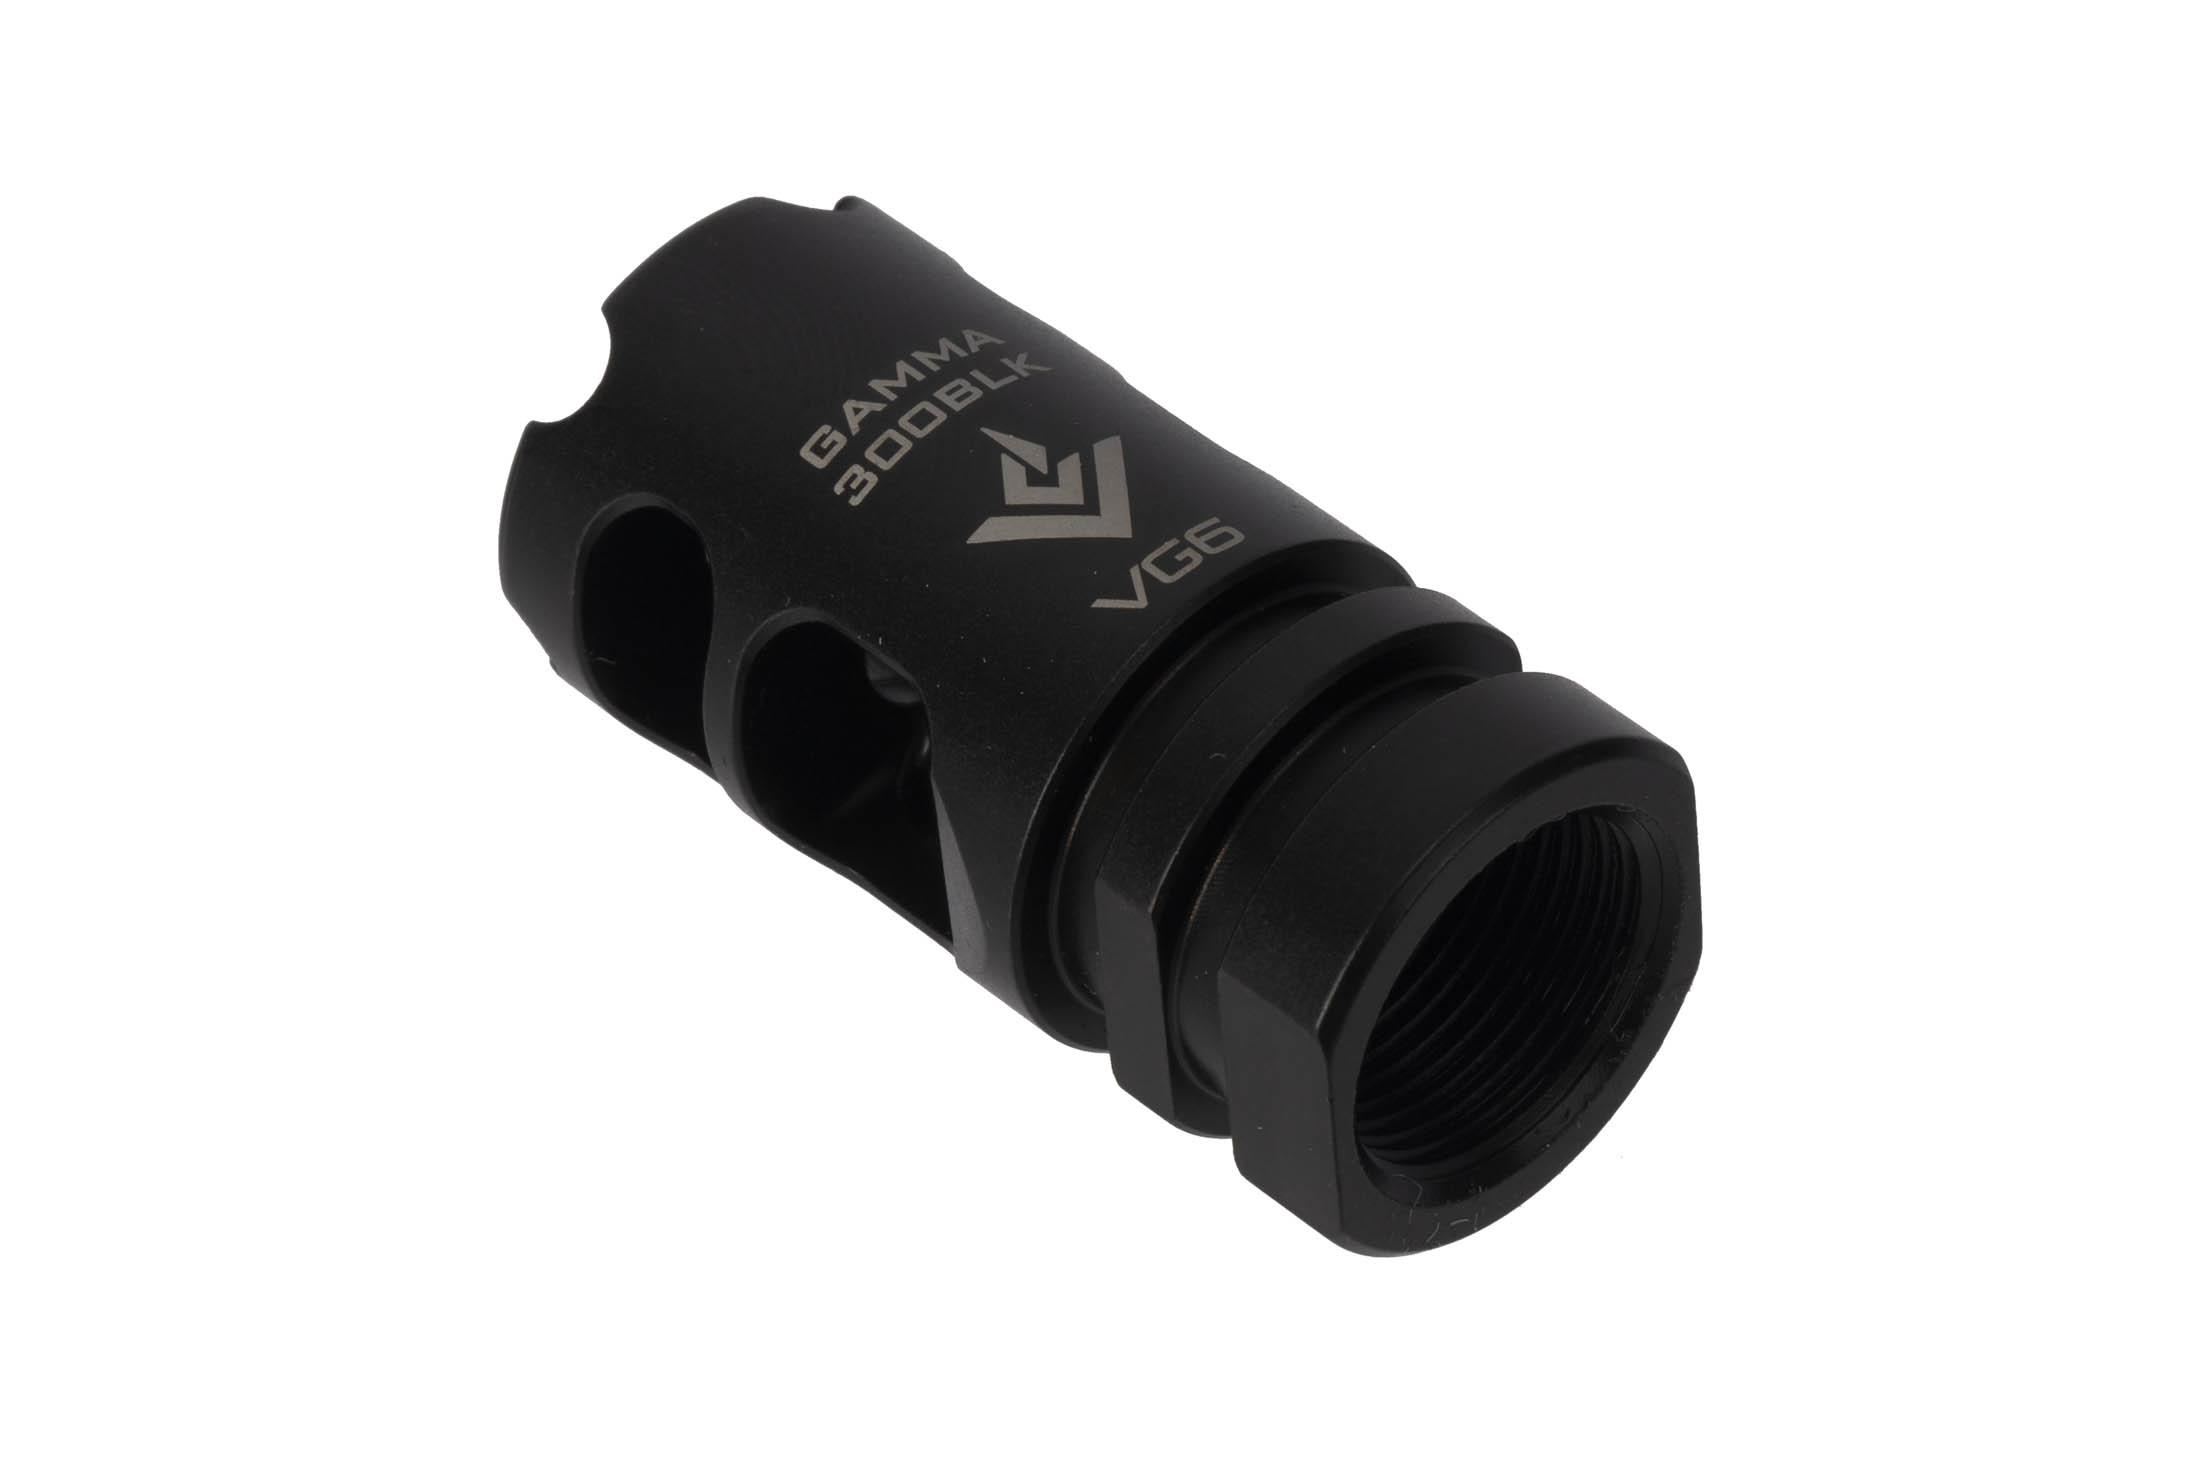 The VG6 Precision Gamma 300BLK High Performance Muzzle Brake helps to eliminate recoil and muzzle climb